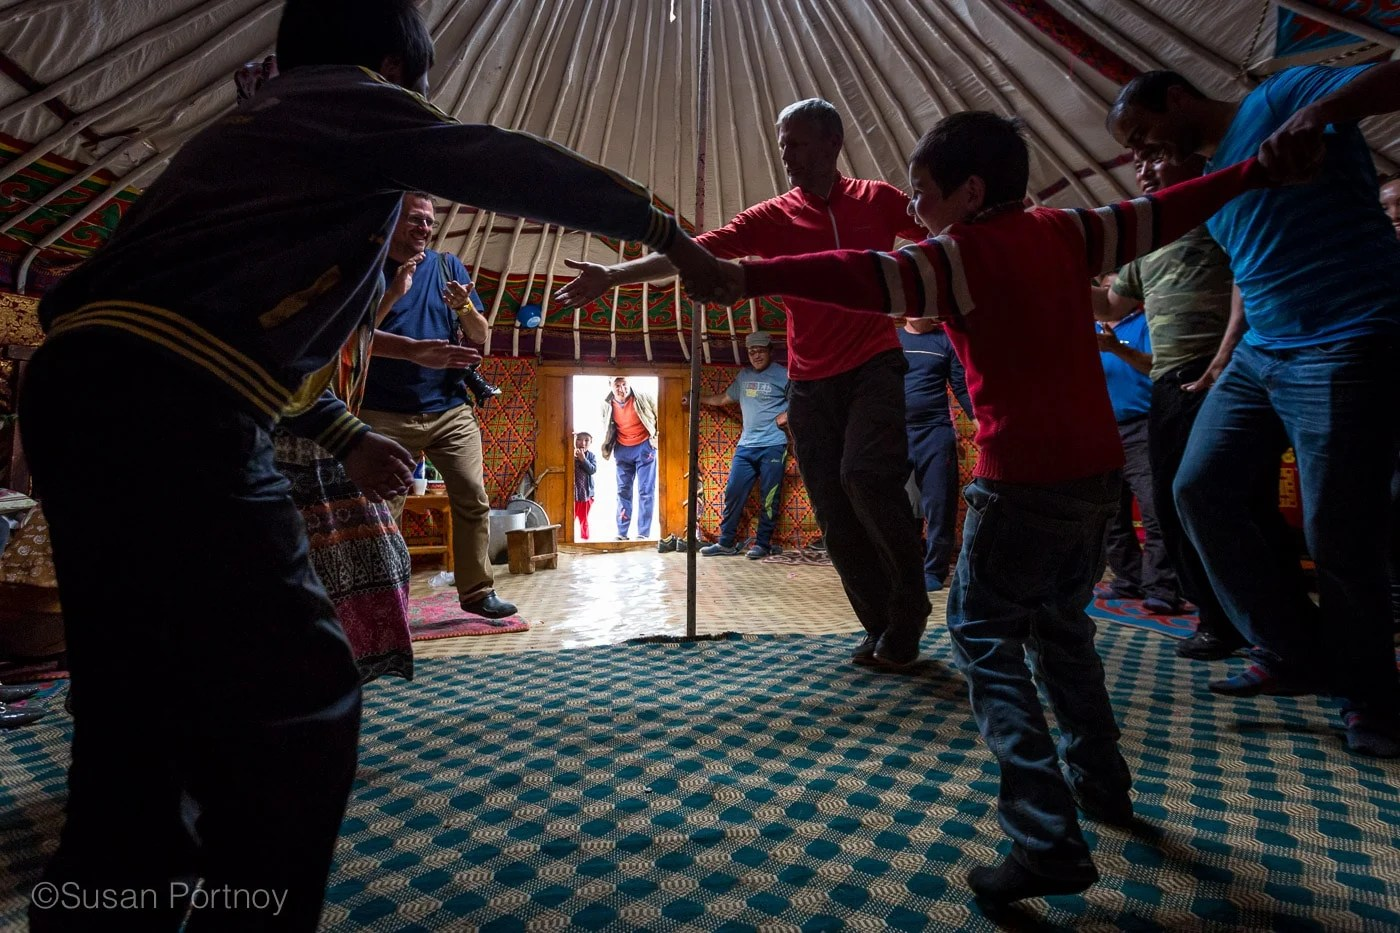 People holding hands and dancing in a circle at the Kazakh Mongolian Dance Party - The Insatiable Traveler